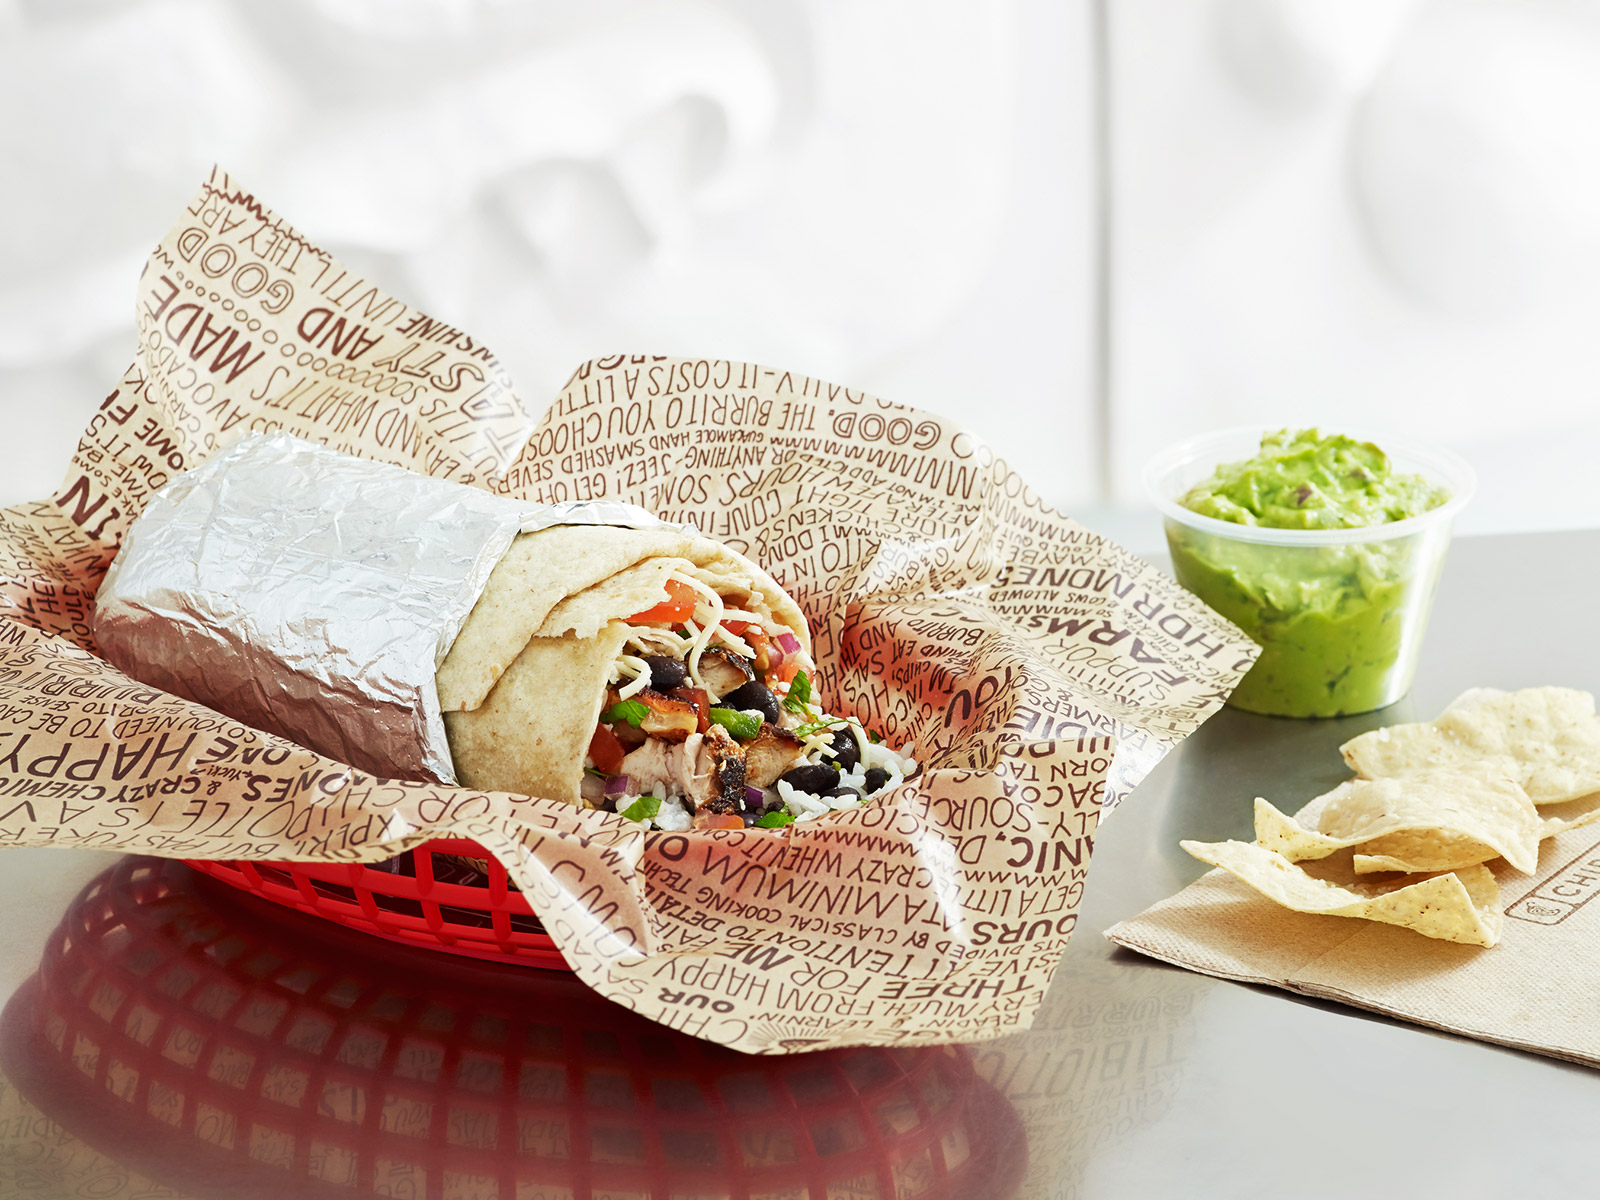 Chipotle Offers Free Delivery for Two Weeks